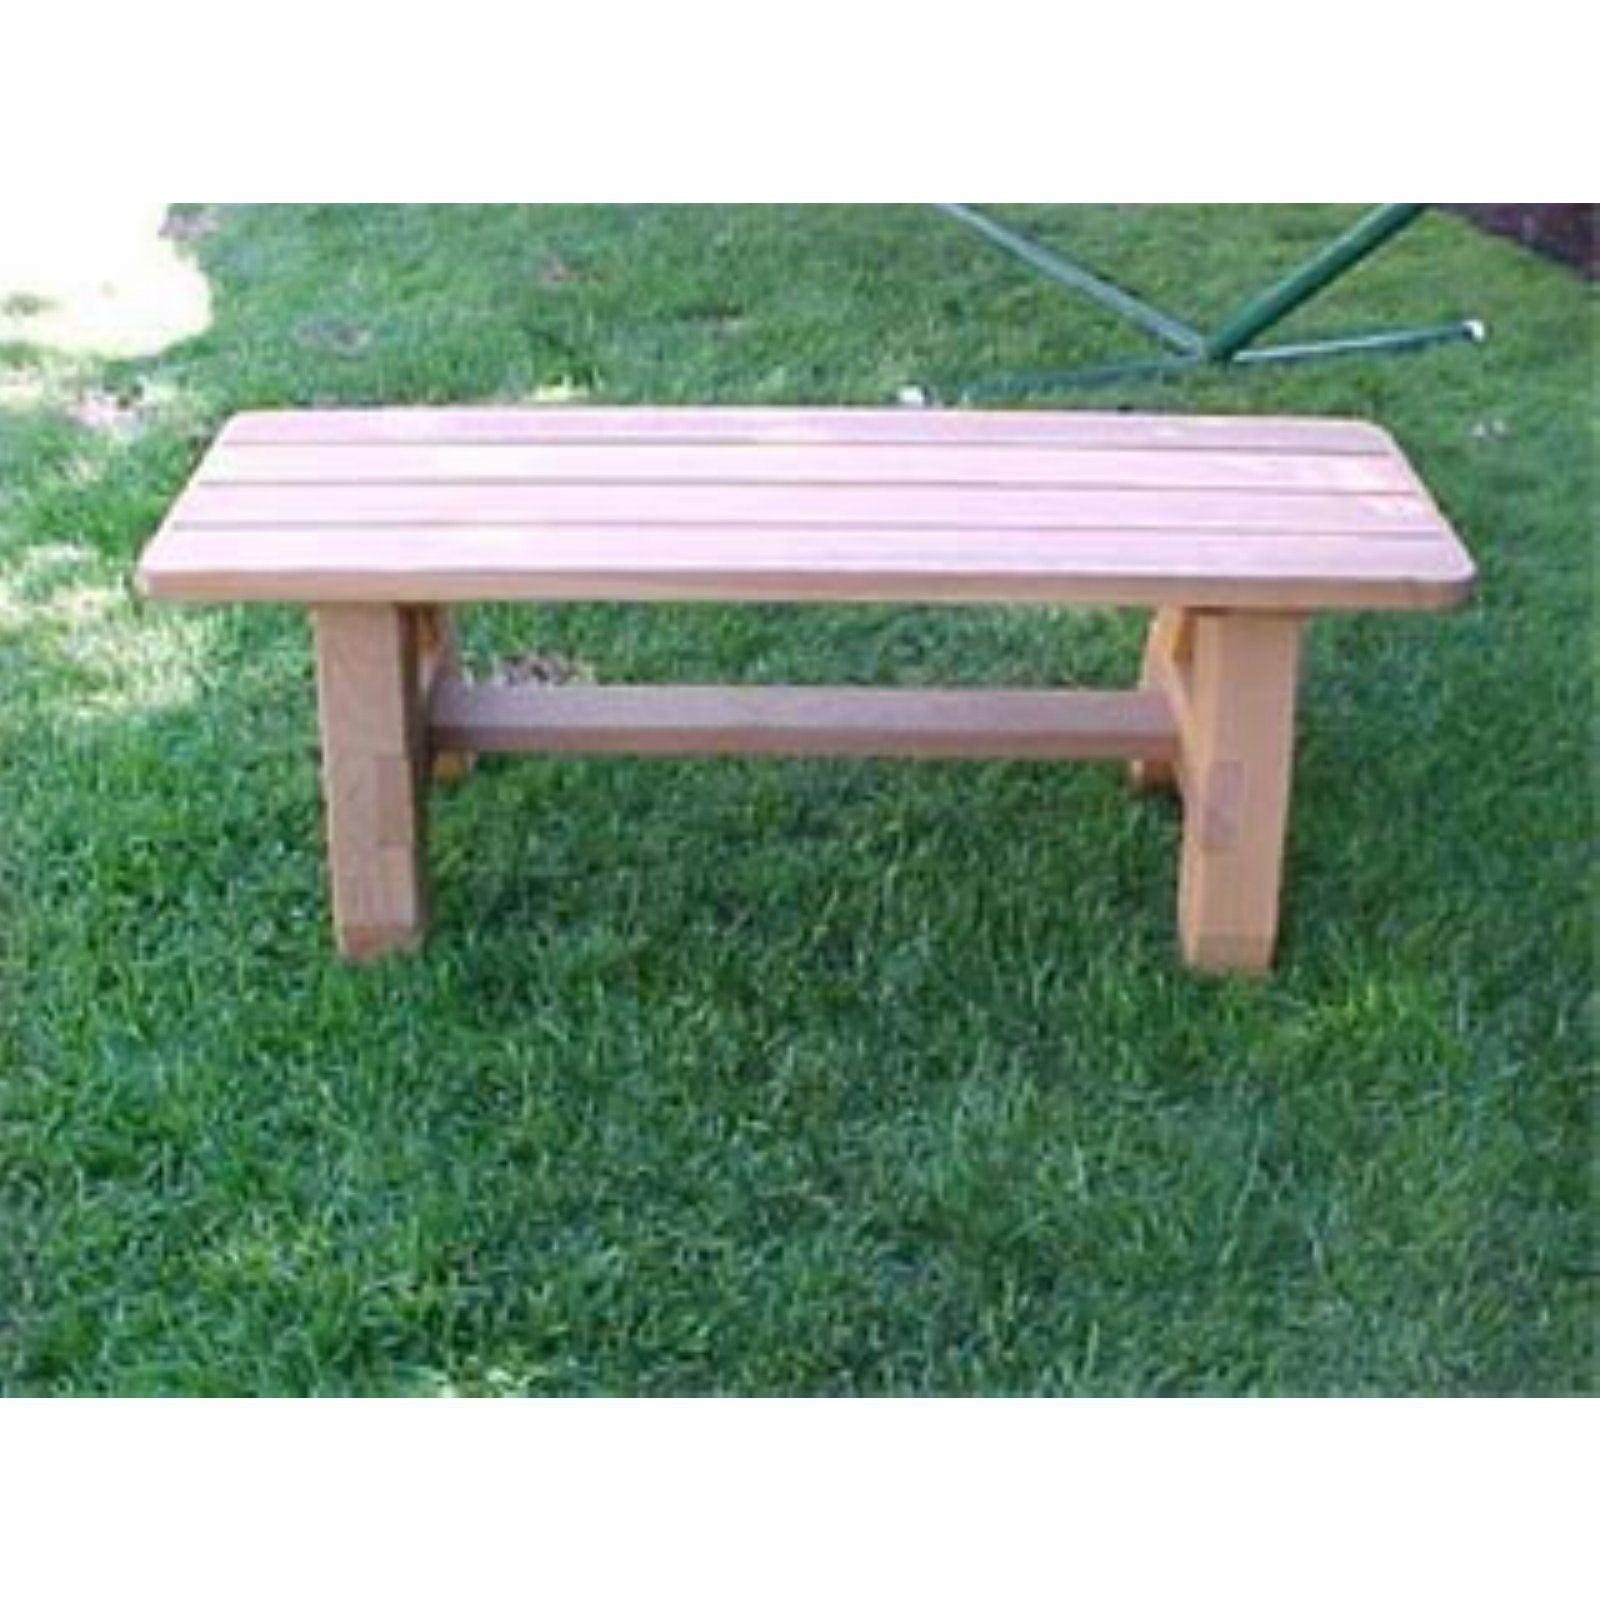 Swell Outdoor Wood Country Classic Cedar Backless Bench In 2019 Lamtechconsult Wood Chair Design Ideas Lamtechconsultcom